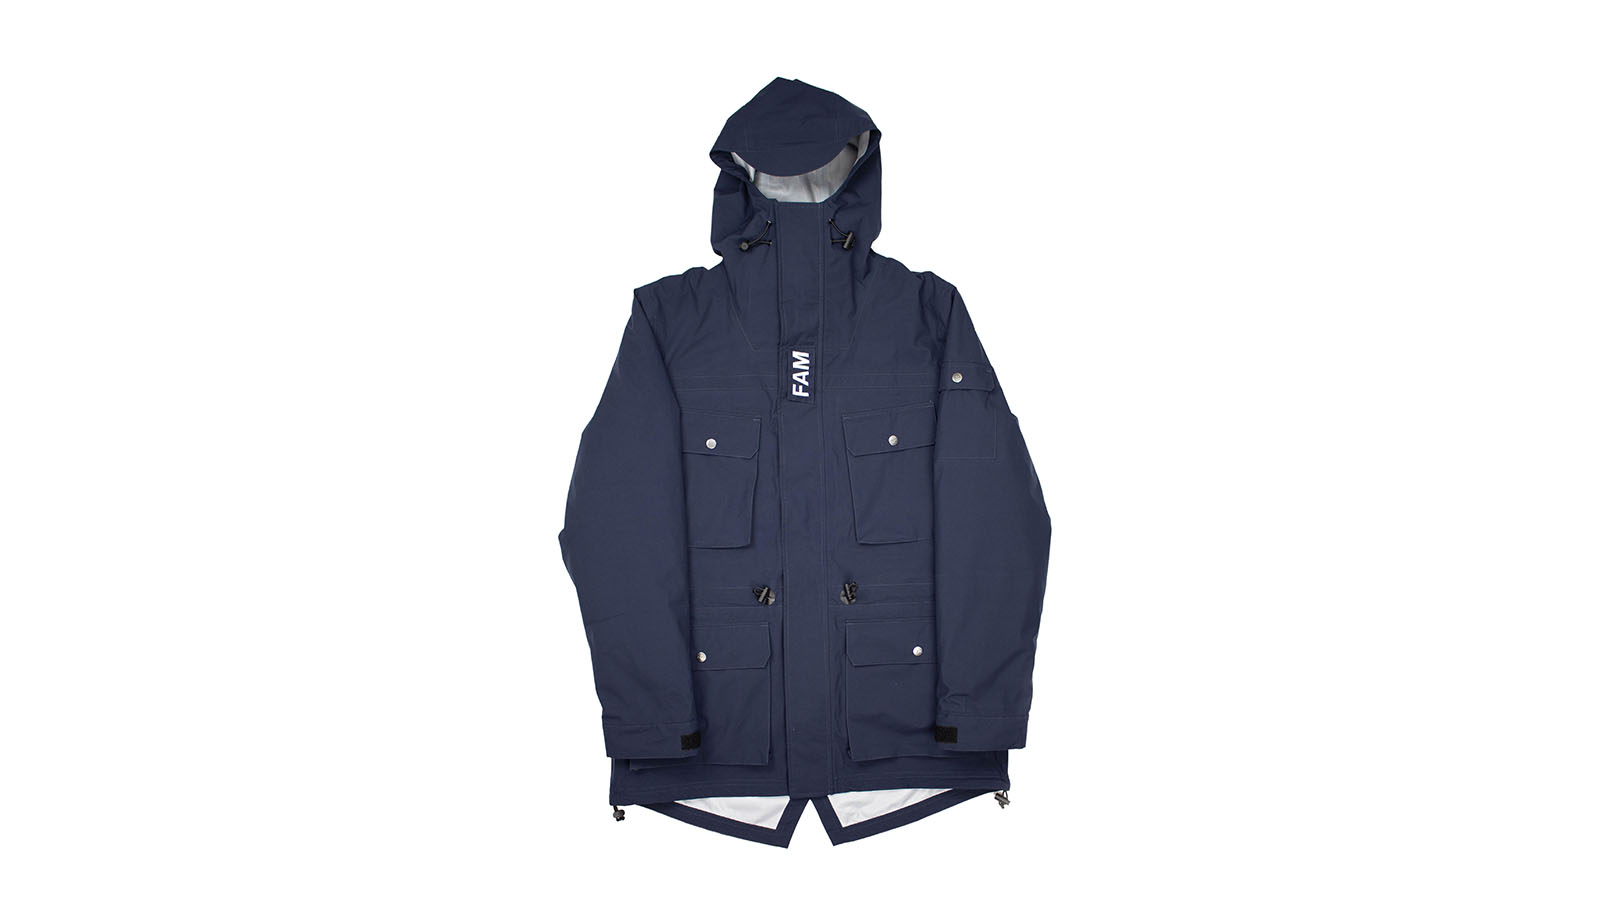 FAM__0000_FAM-306-3in1-Parka-No-shadow